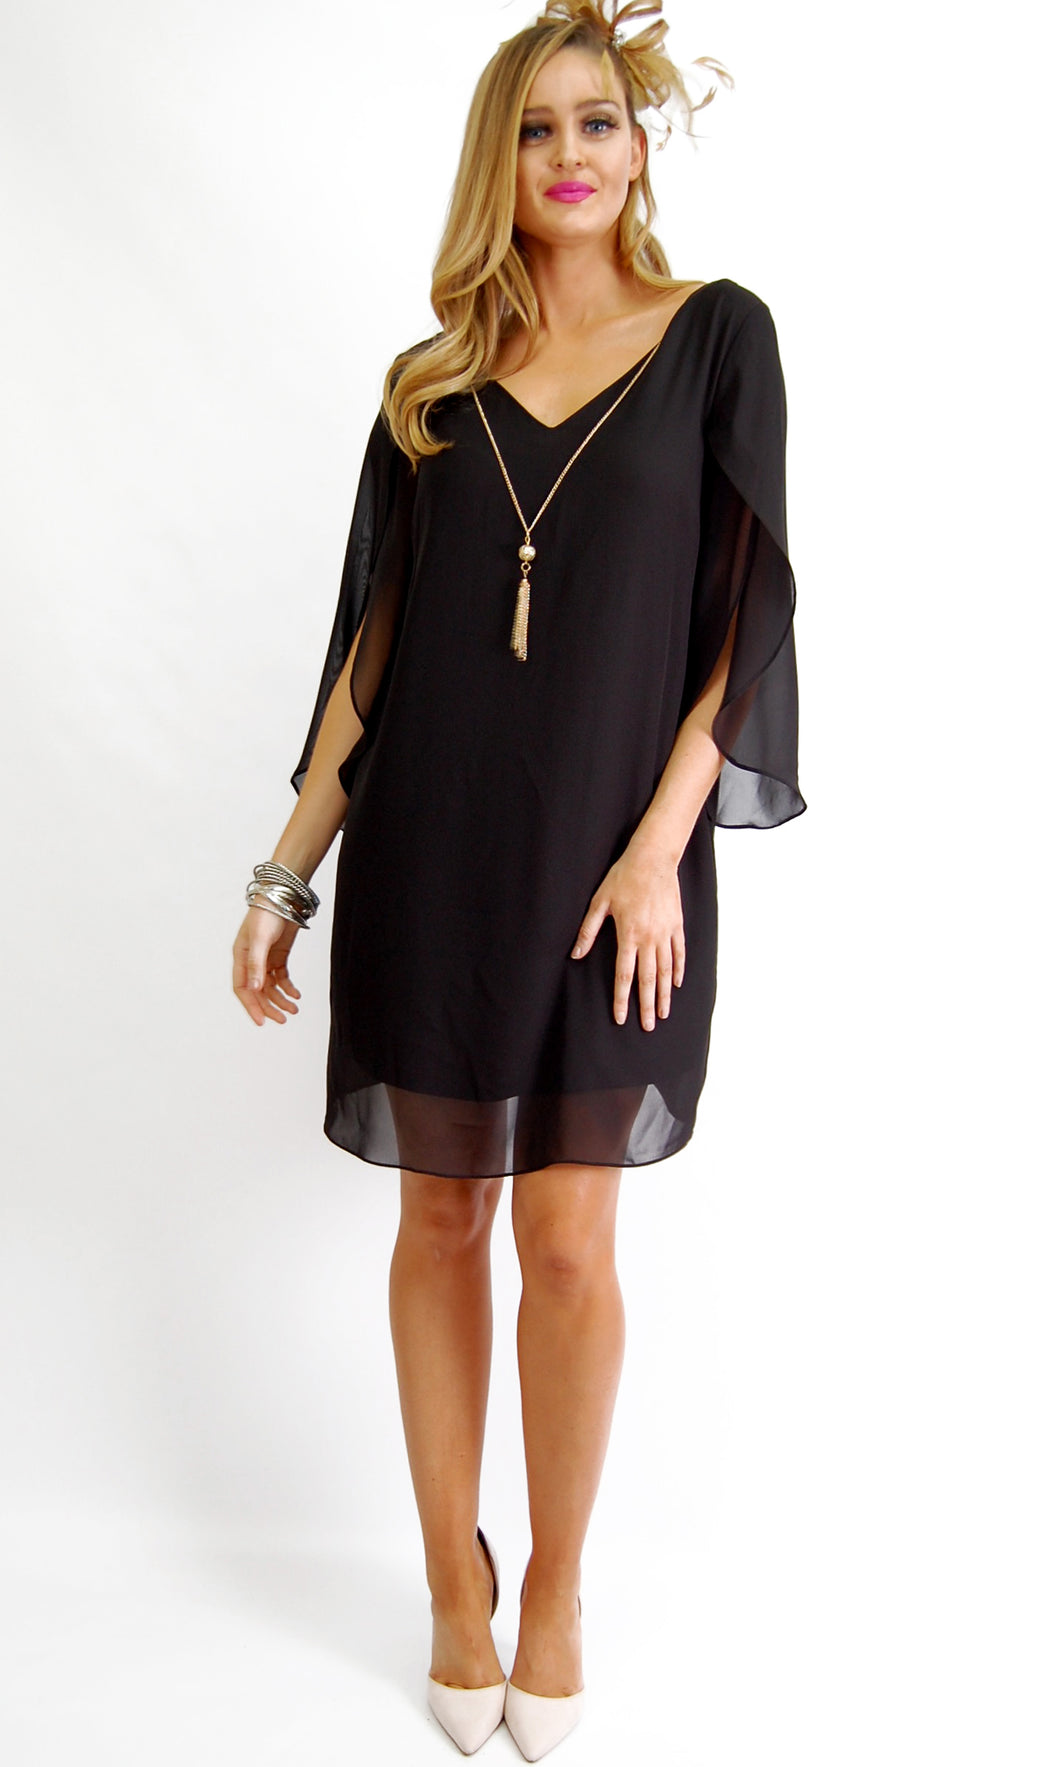 JS0171-1NC Relaxed Shift Dress (Pack)